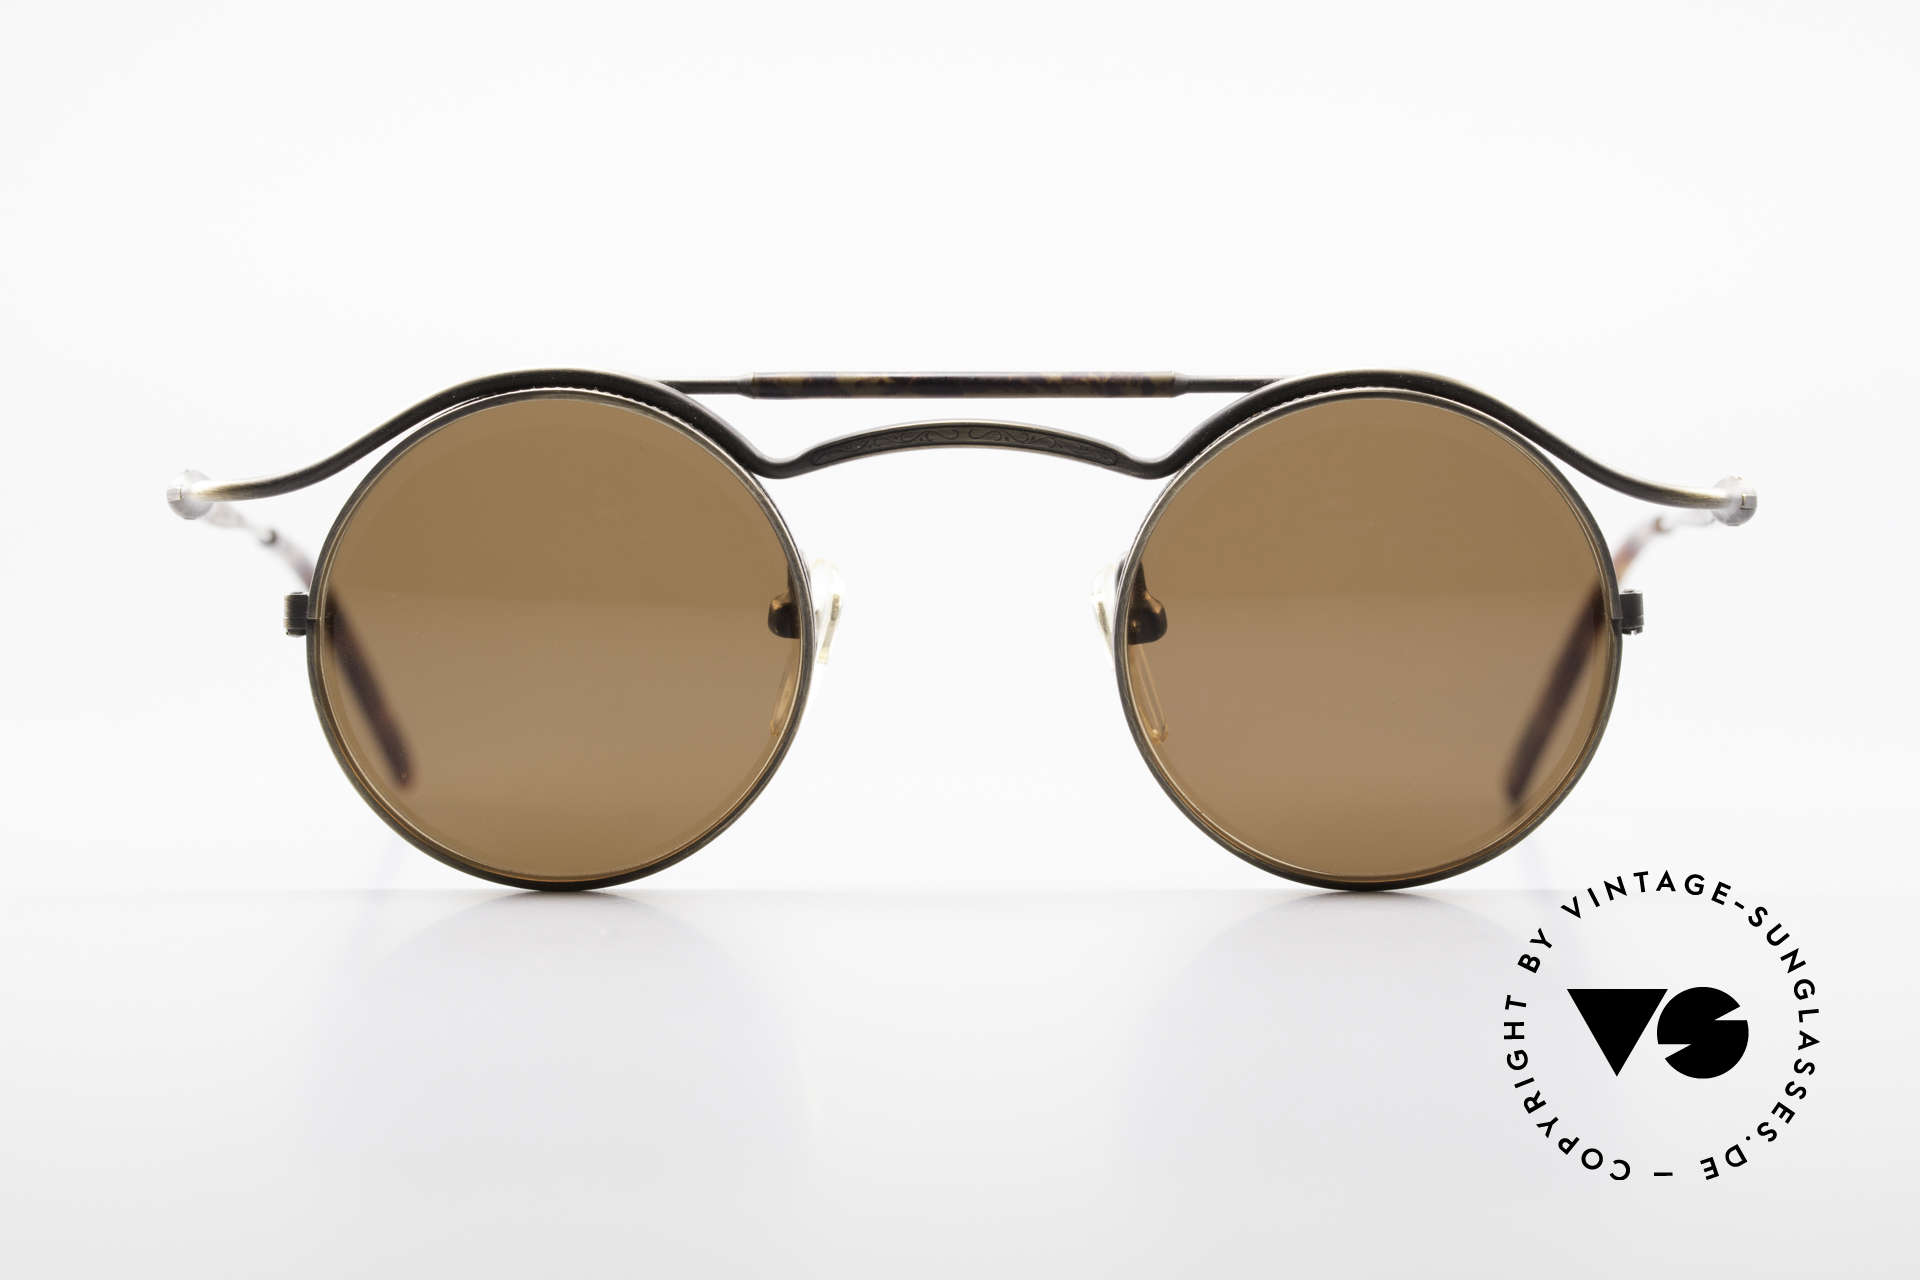 Matsuda 2903 Steampunk 90's Sunglasses, 'Steampunk sunglasses' by the jap. 'design manufactory', Made for Men and Women